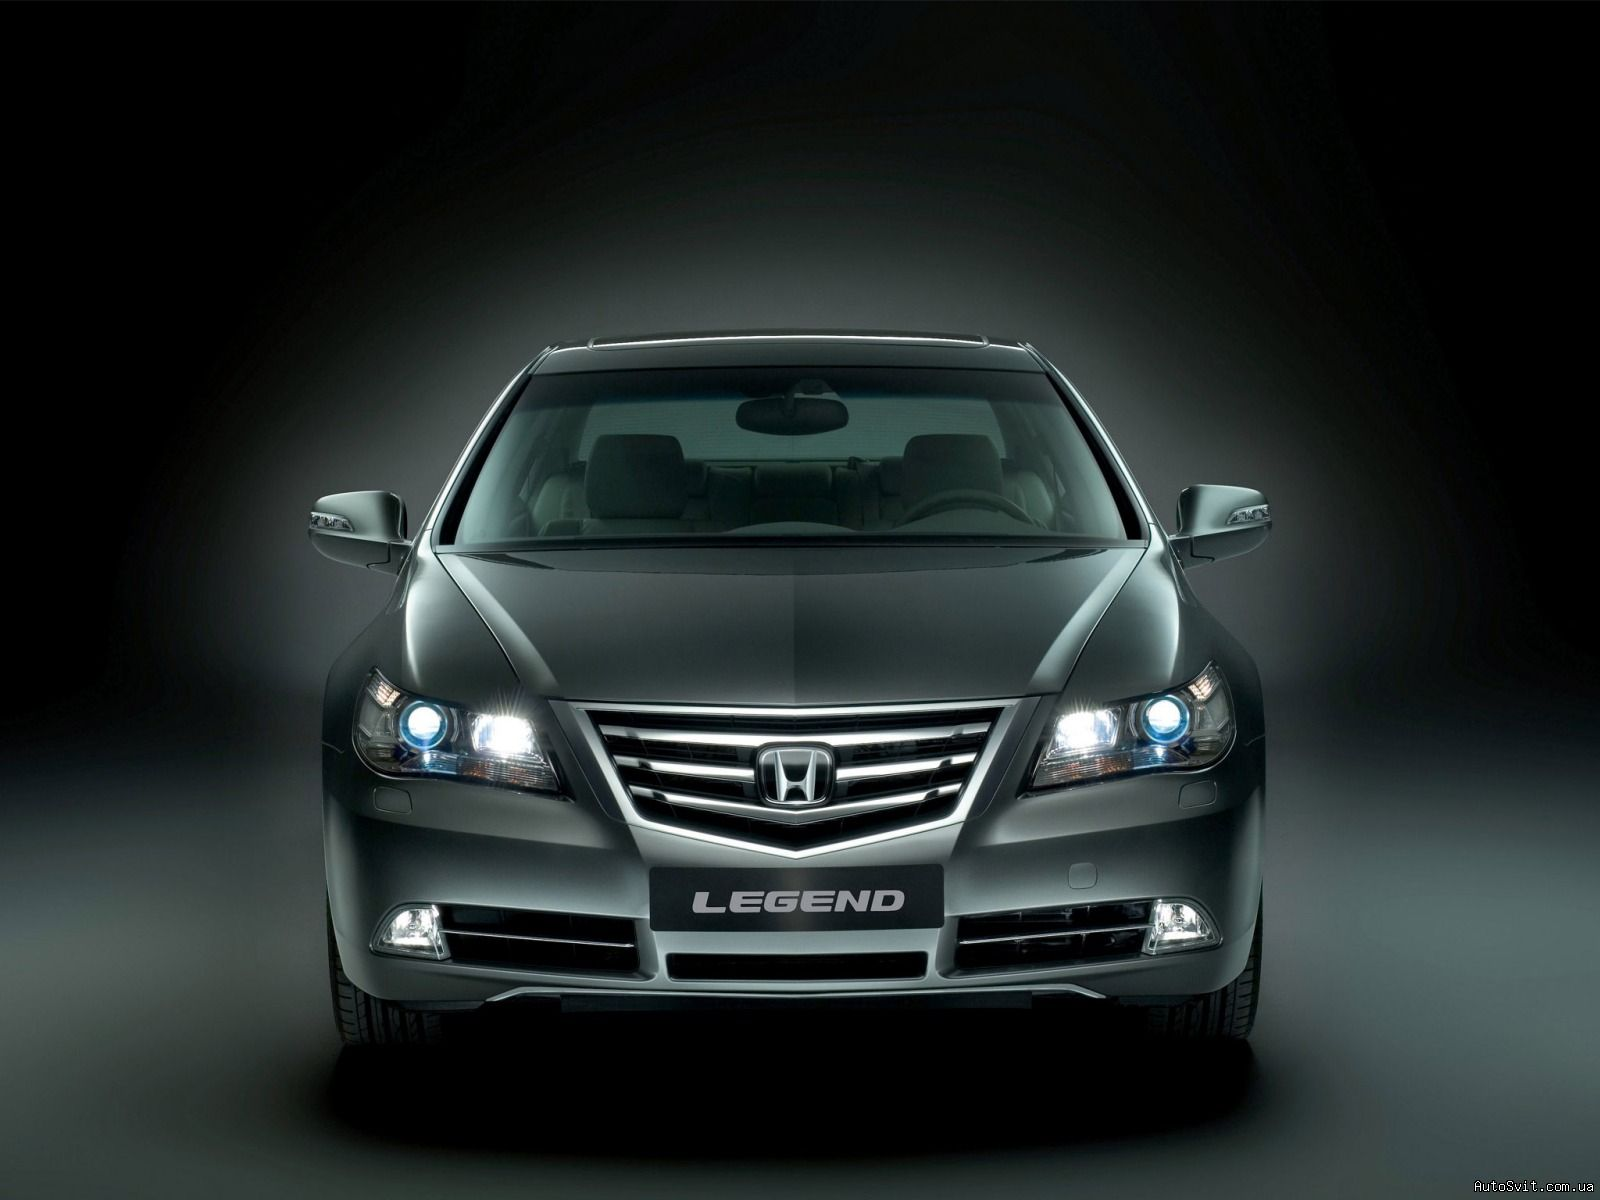 Cars honda legend iv (kb1) 2010 #15